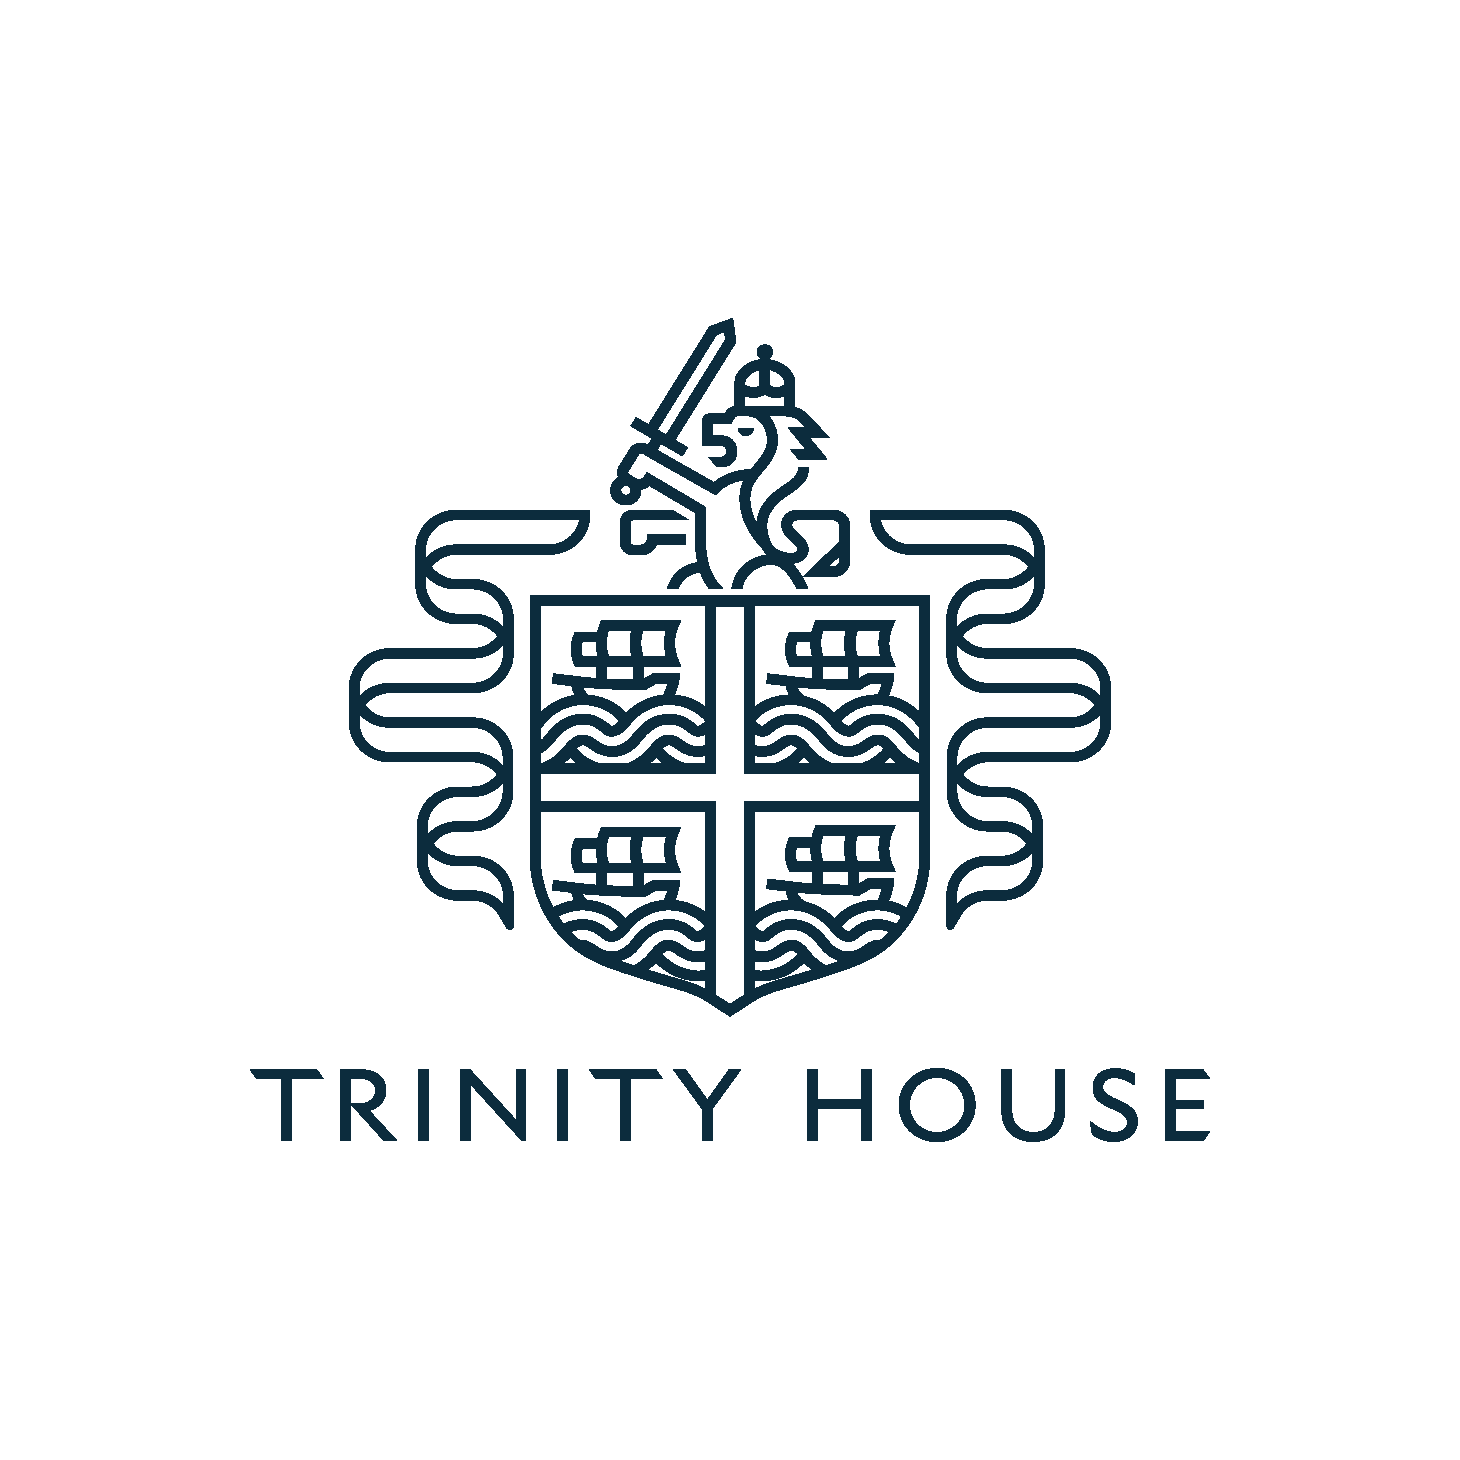 A white circle with the Trinity House logo in the centre.